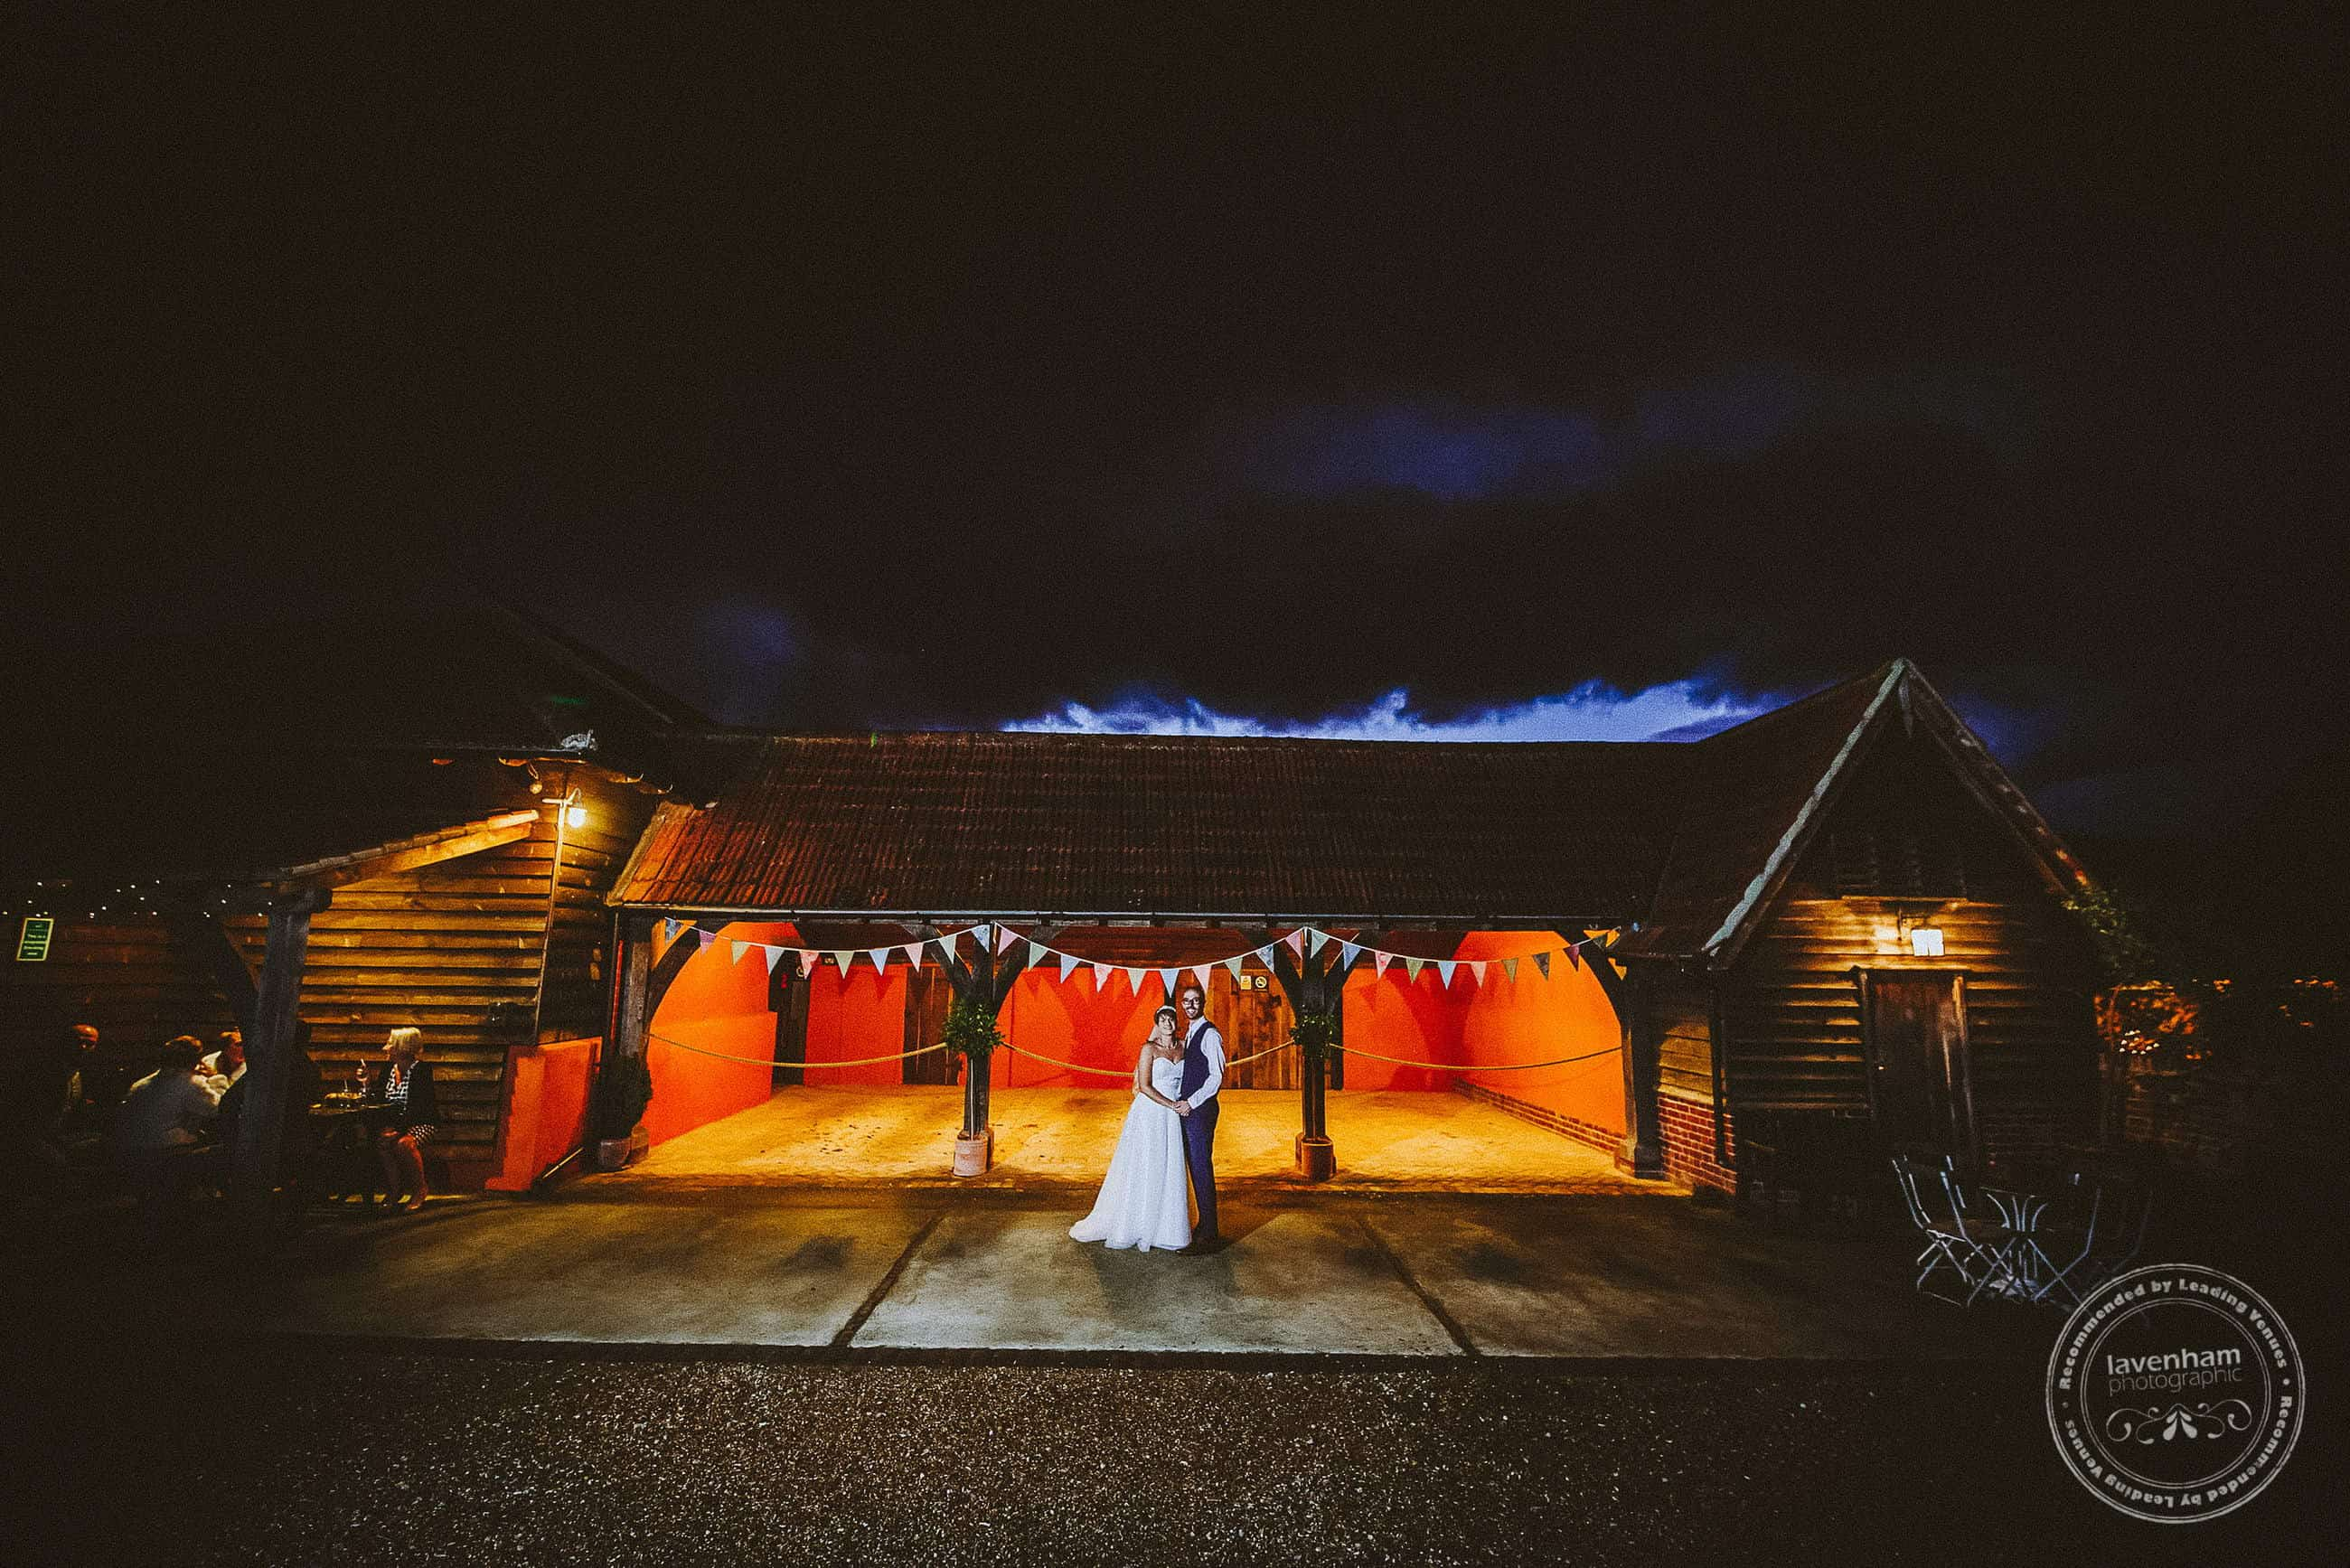 A very dramatic wedding photograph - the bright orange colour inside the cart lodge at Moreves barn. photographed with off-camera flash